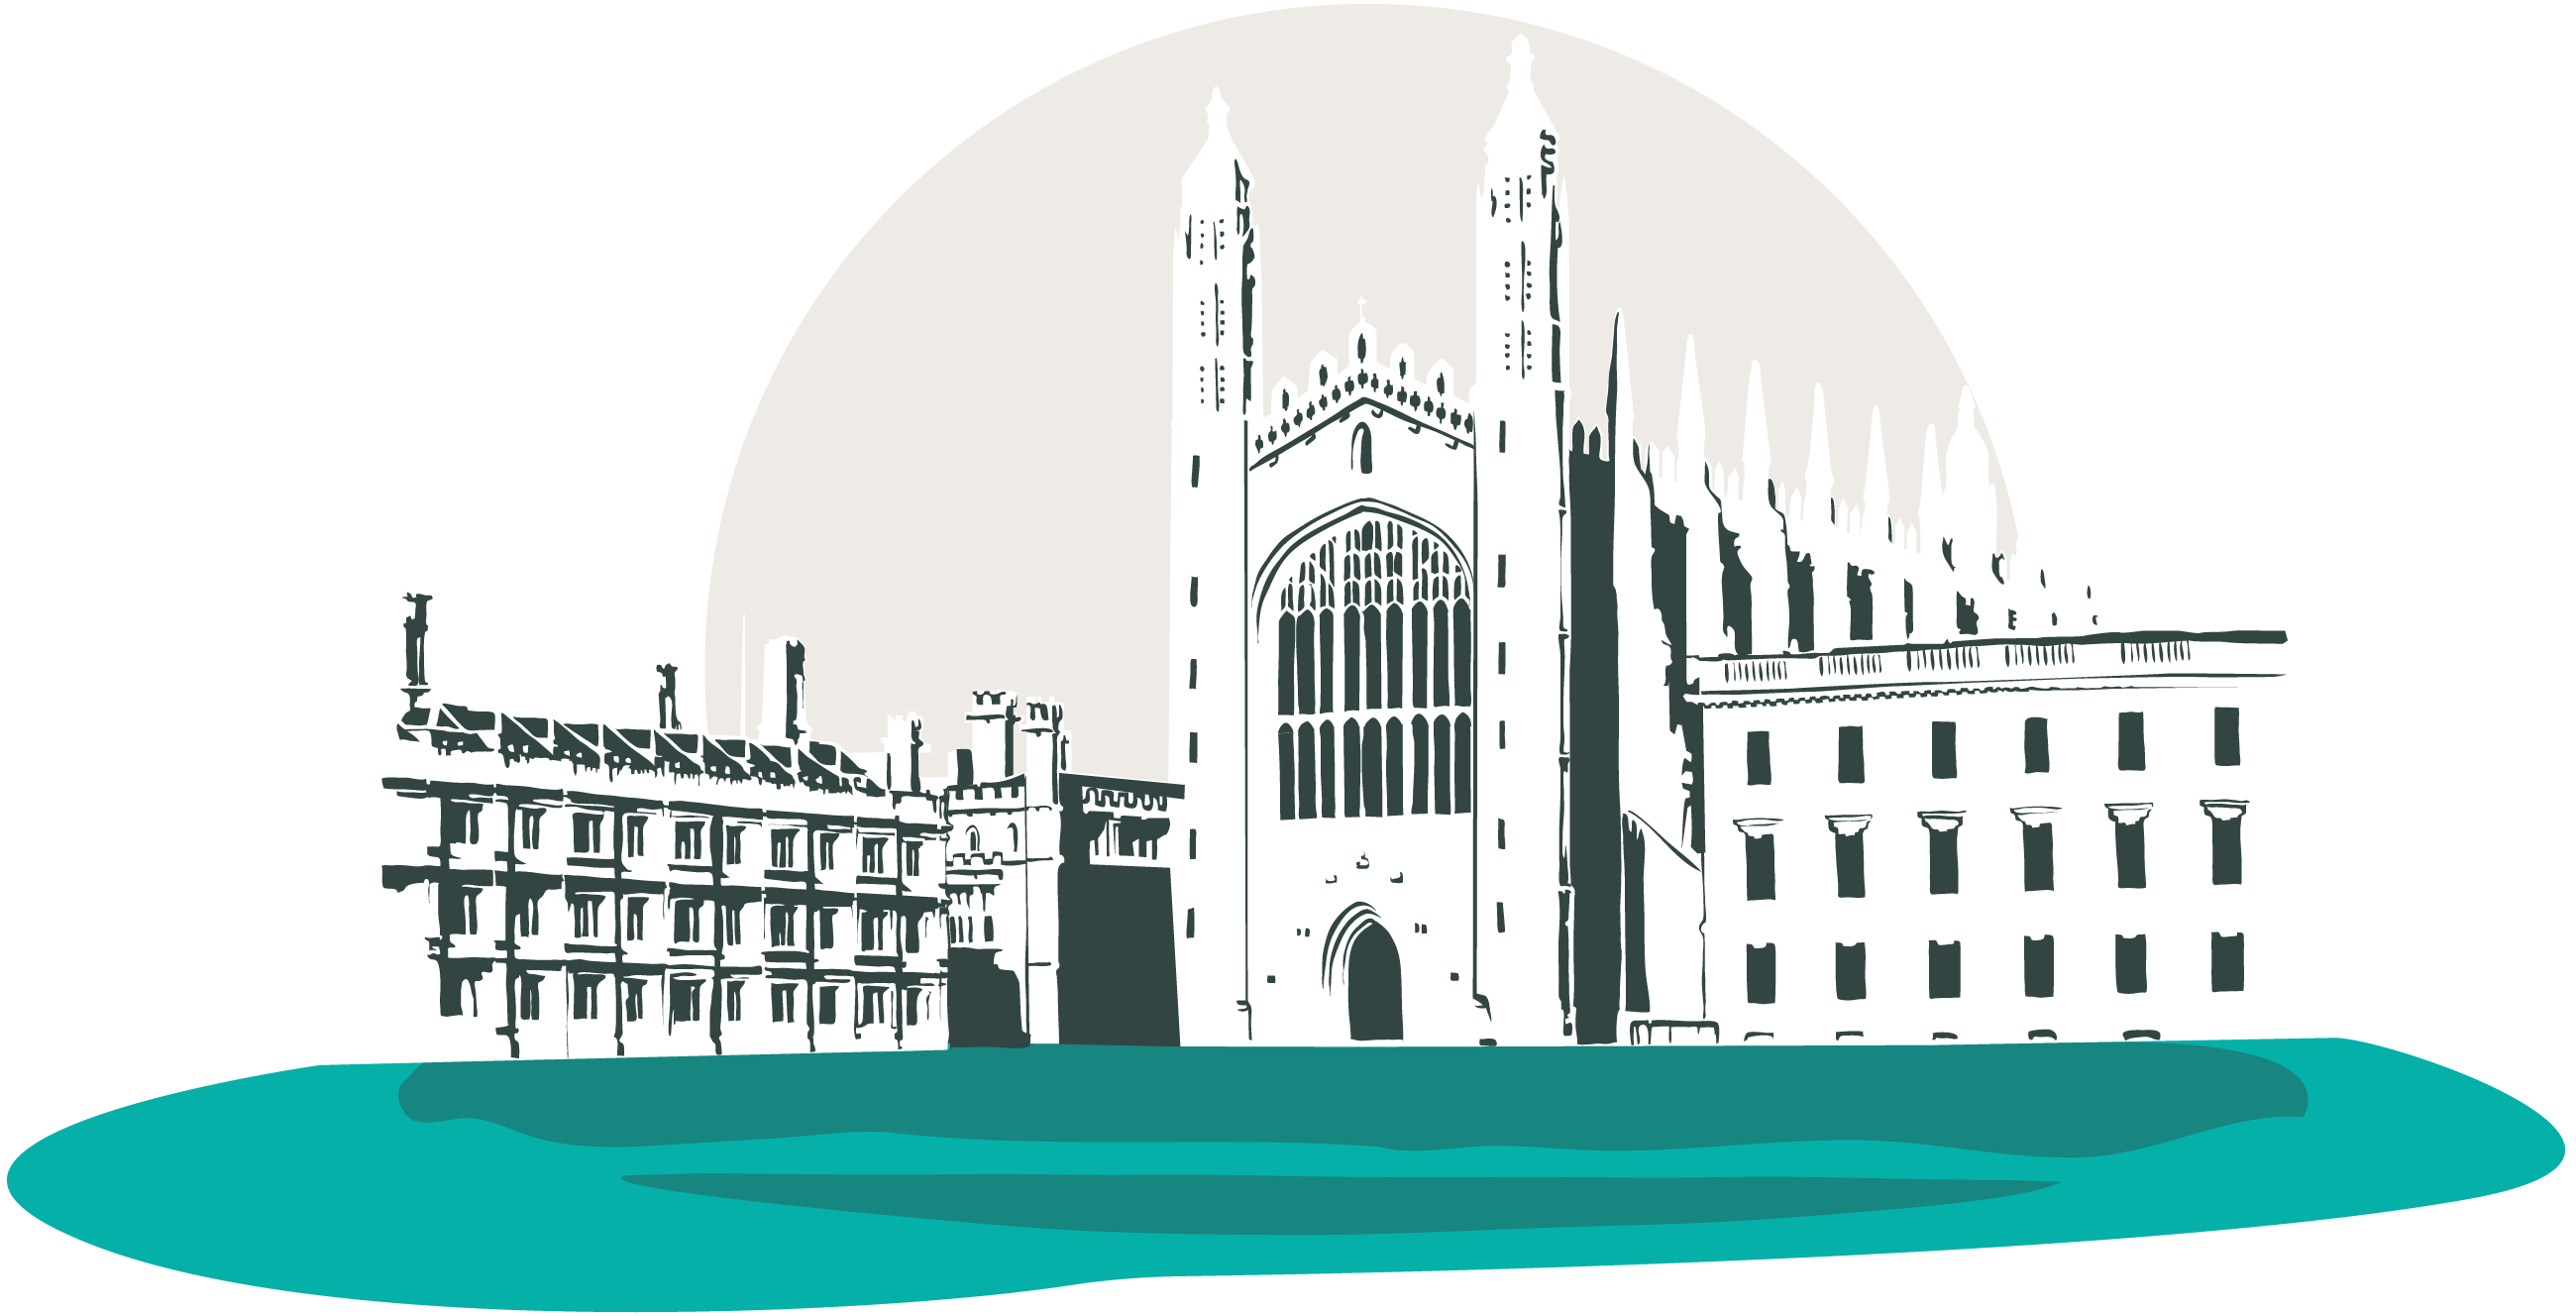 A stylised picture of King's College Chapel in Cambridge, UK